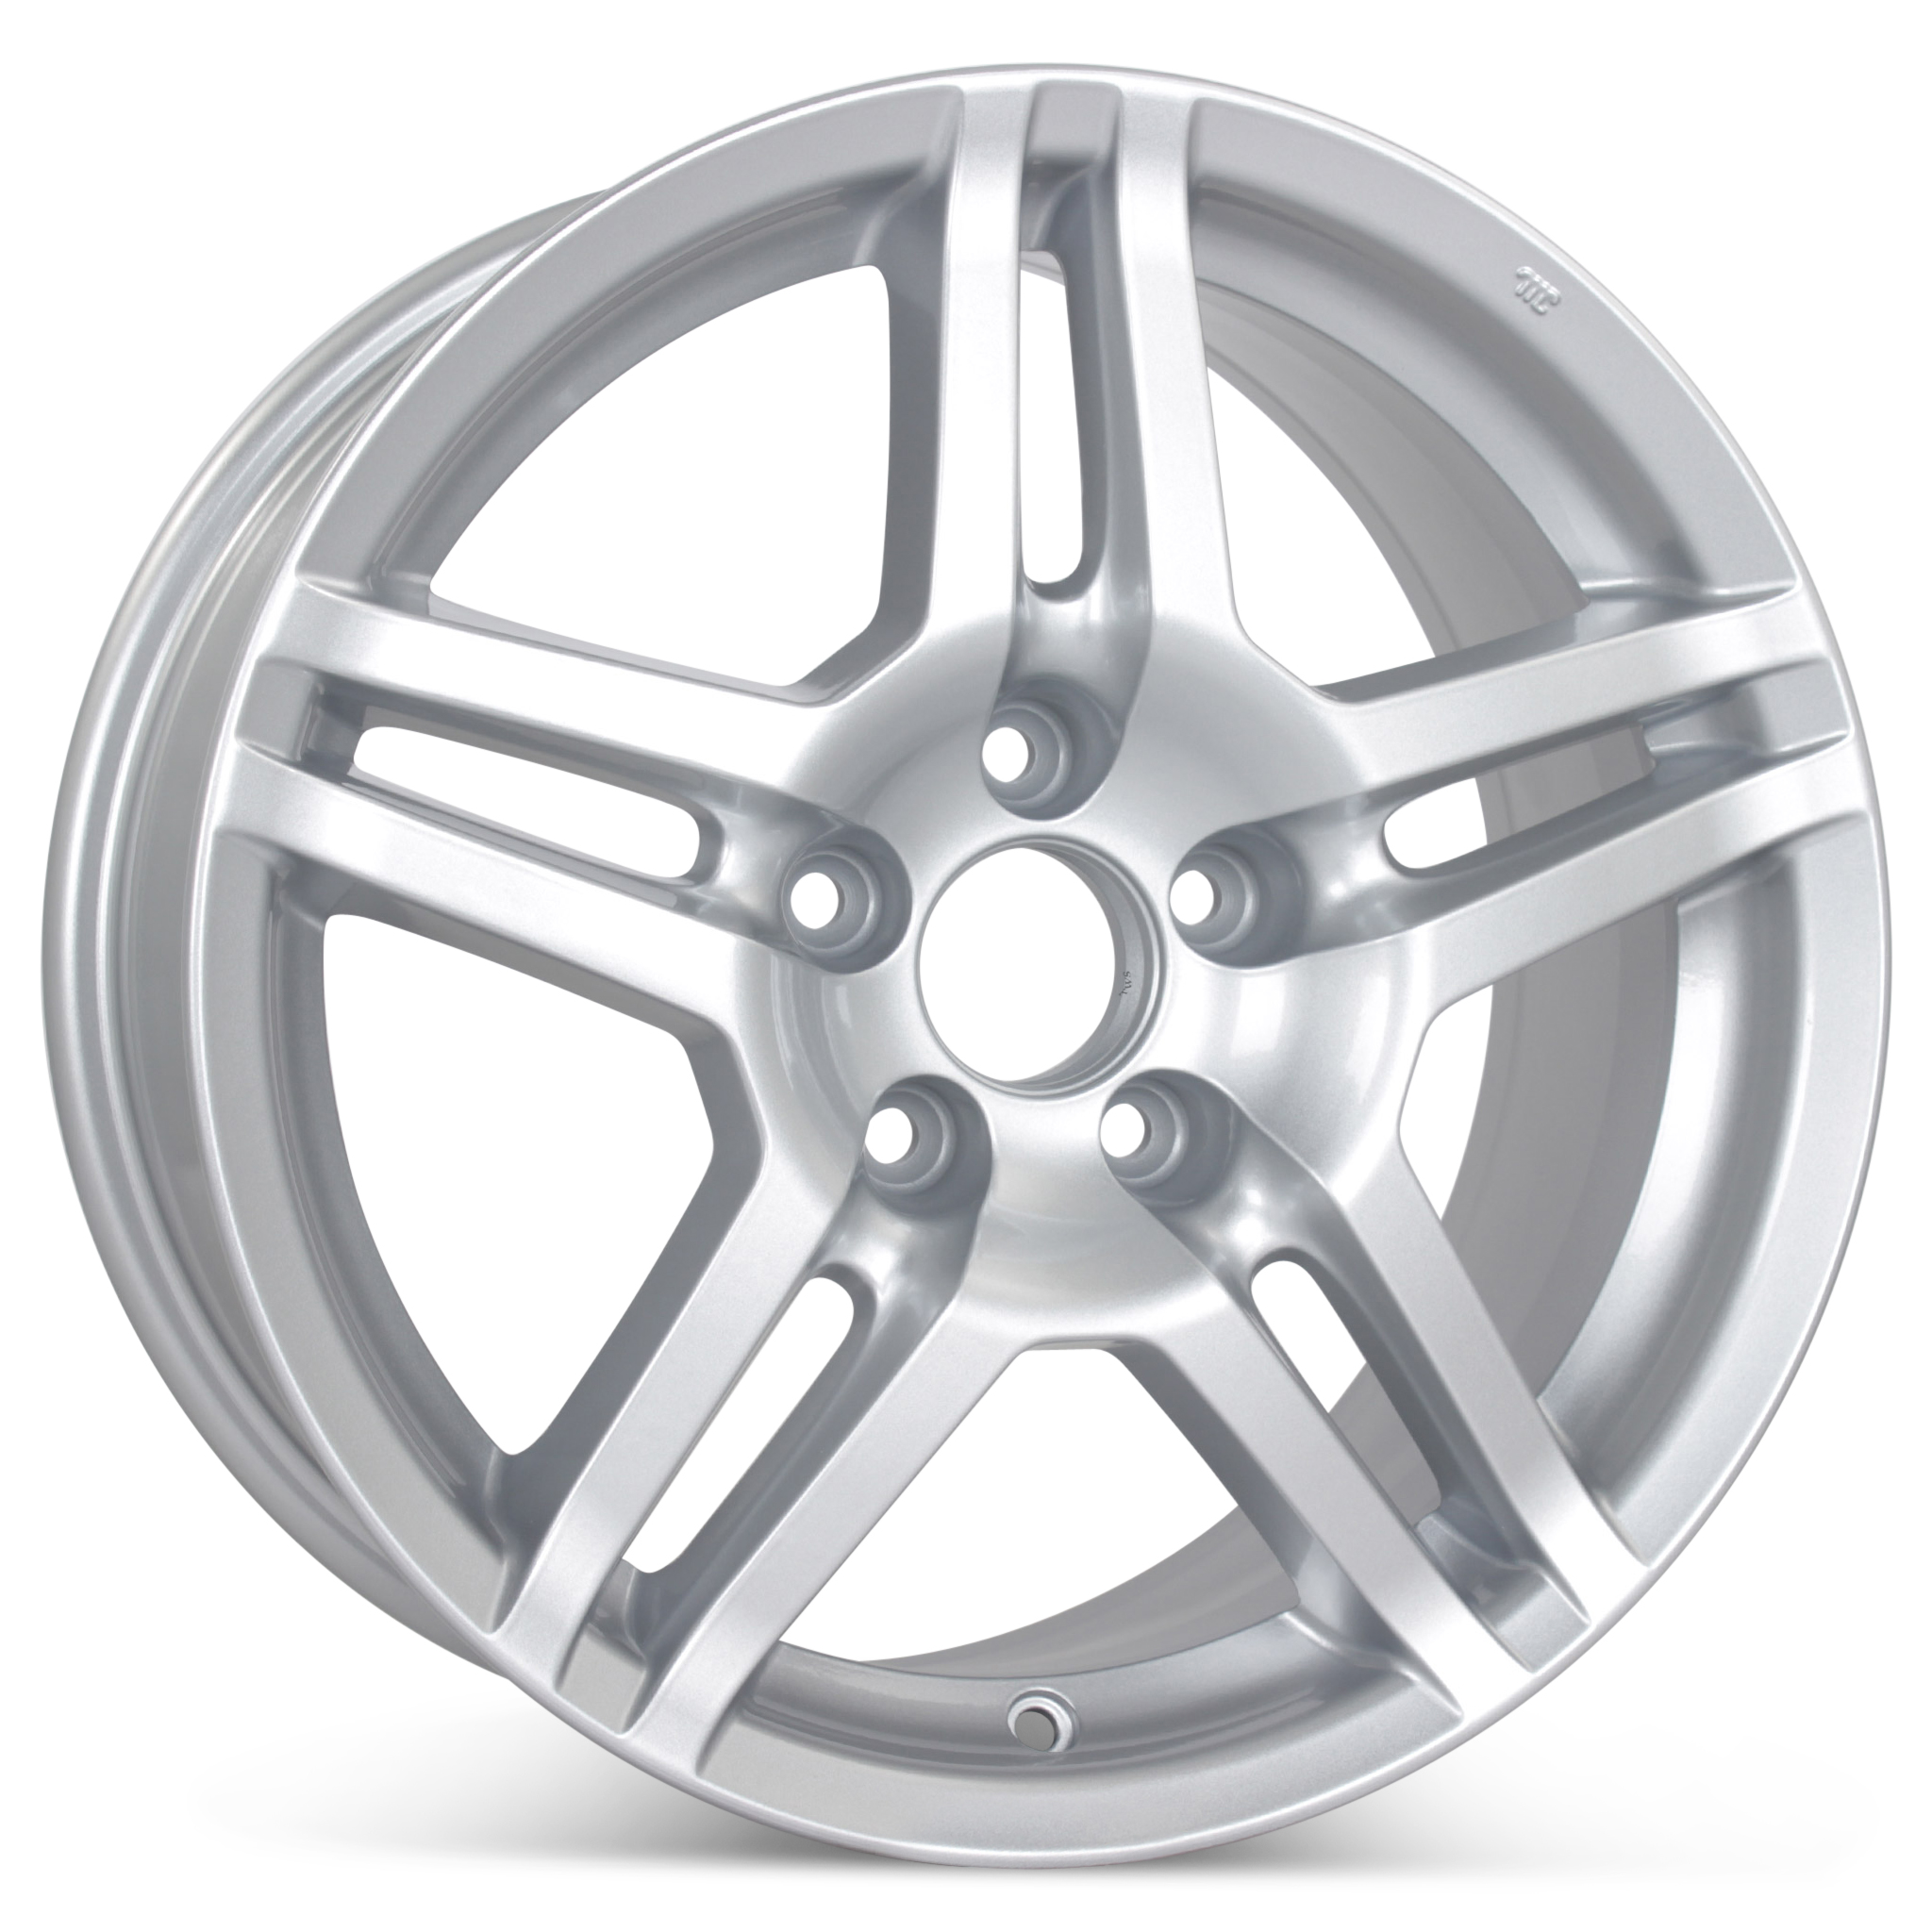 "New 17"" X 8"" Alloy Replacement Wheel For Acura TL 2007"